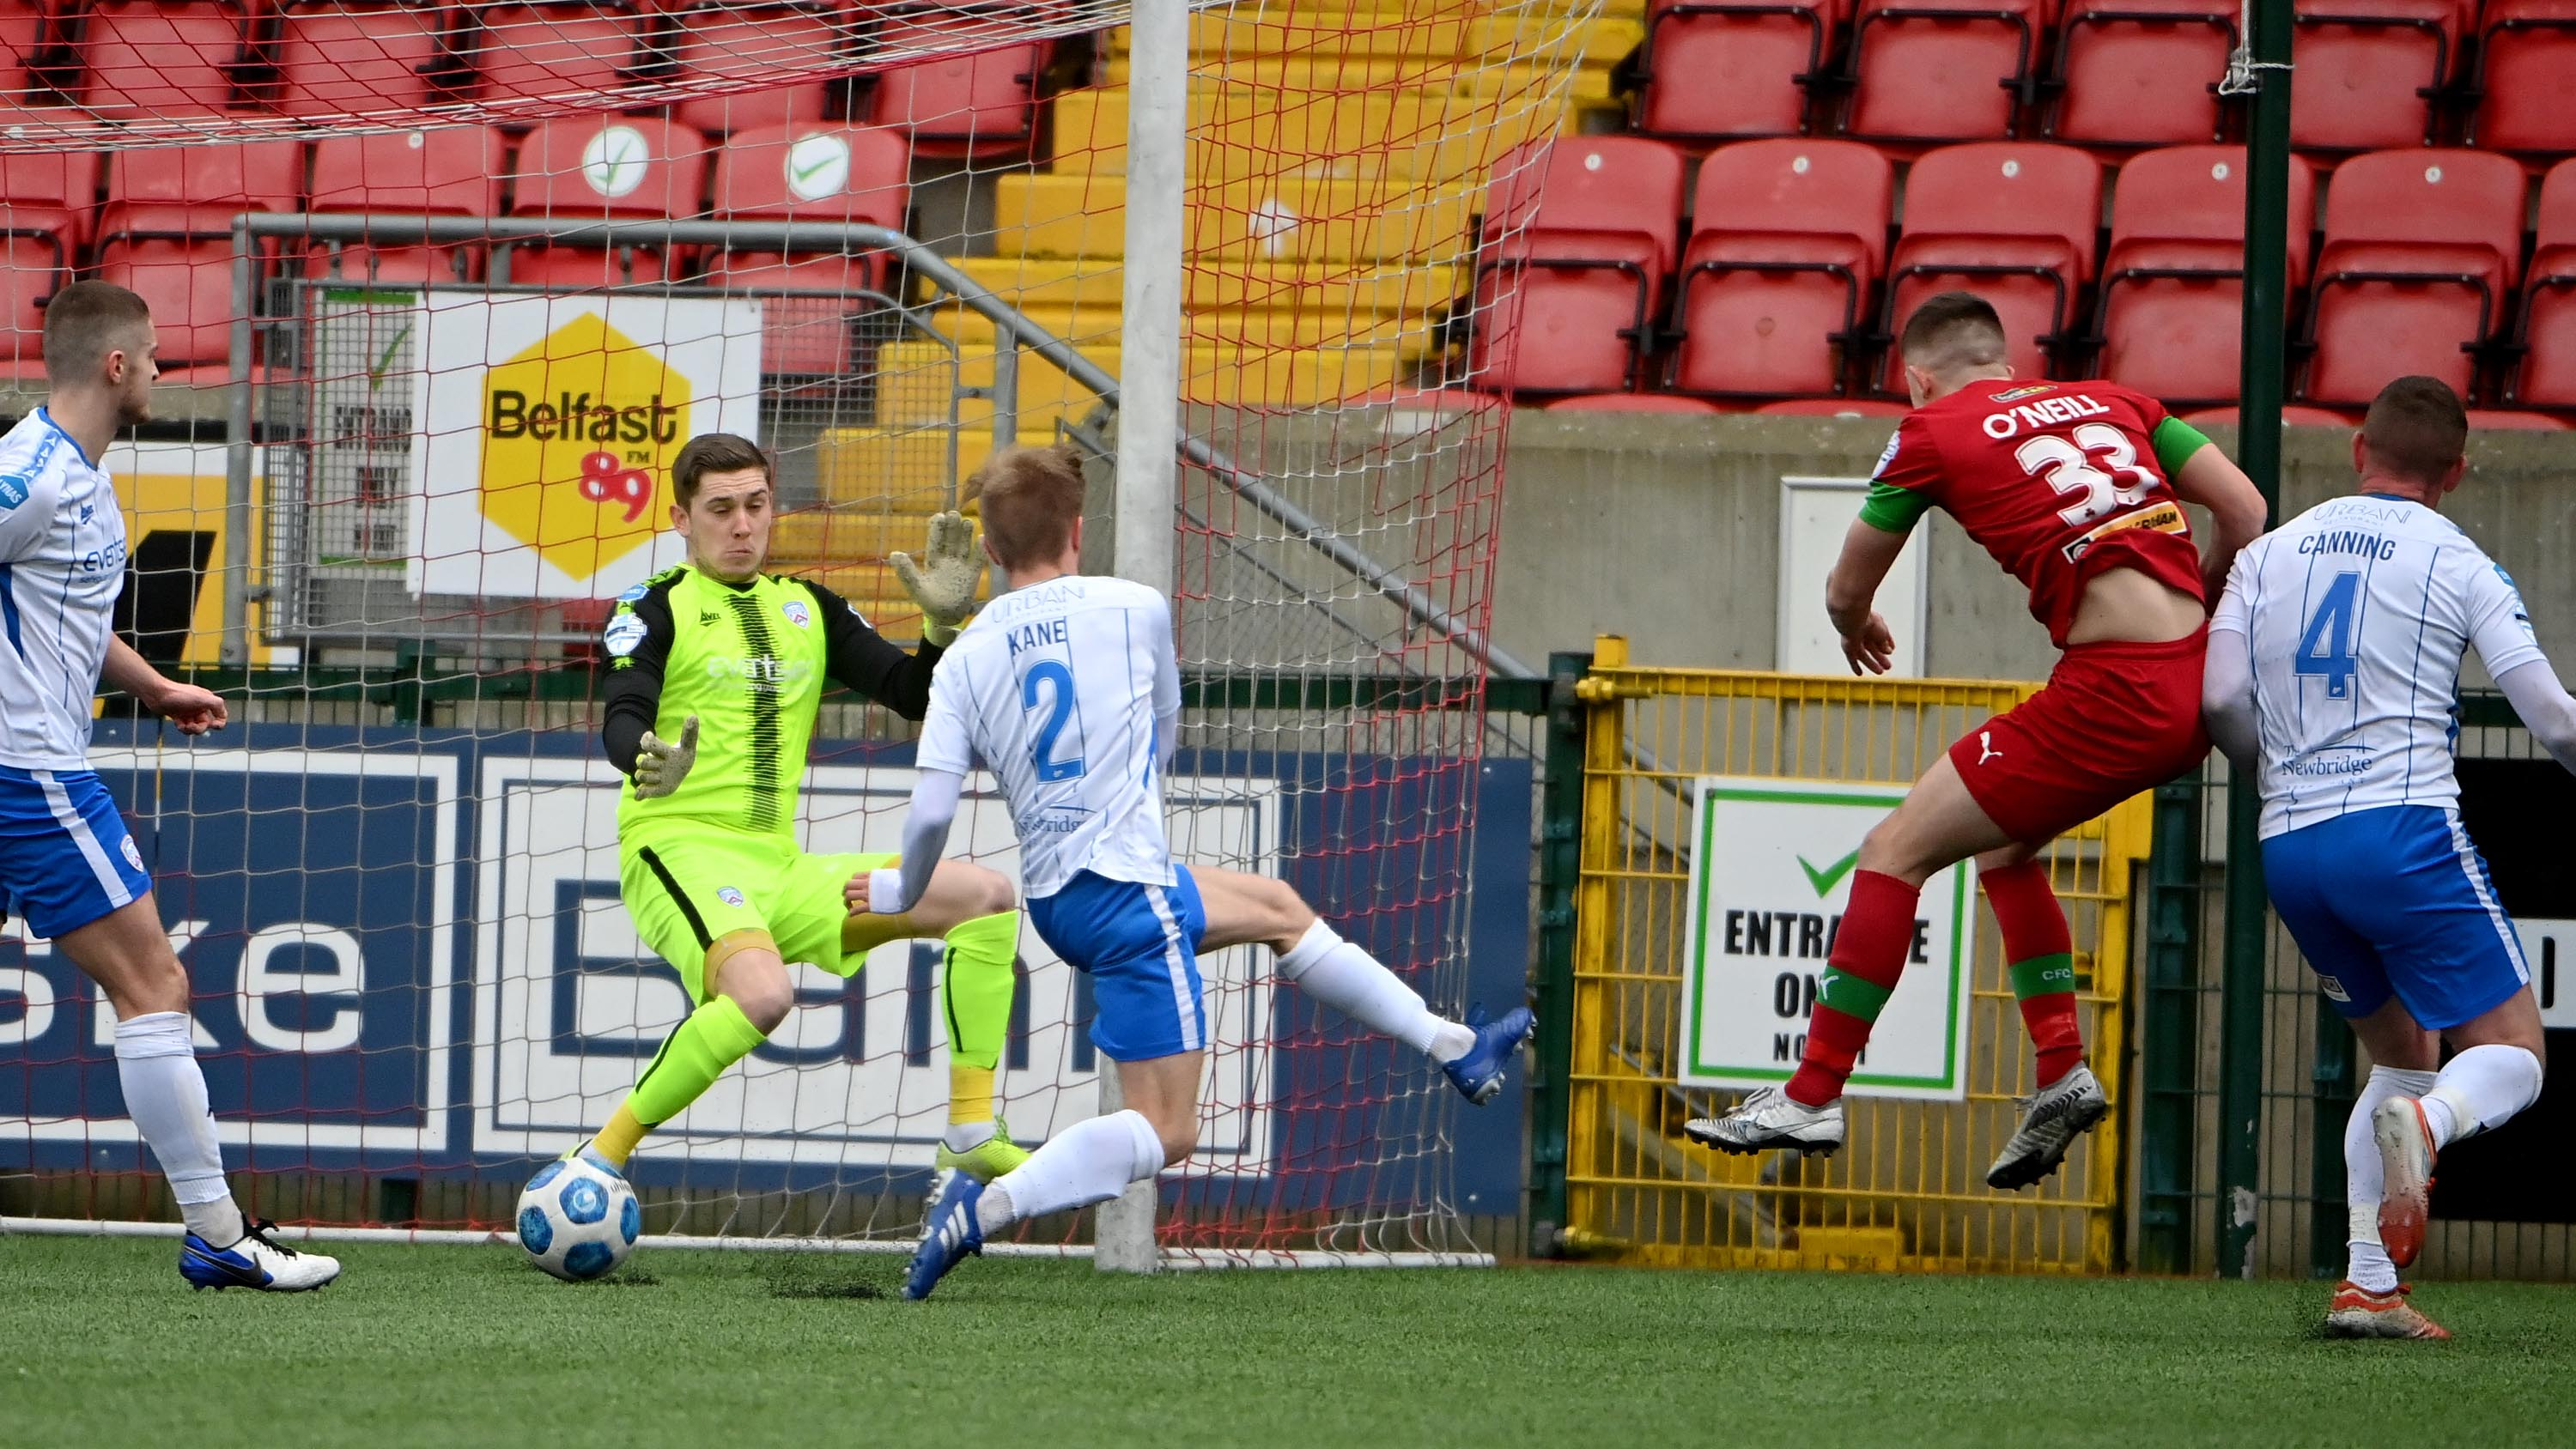 Paul O\'Neill fires home Cliftonville\'s second goal